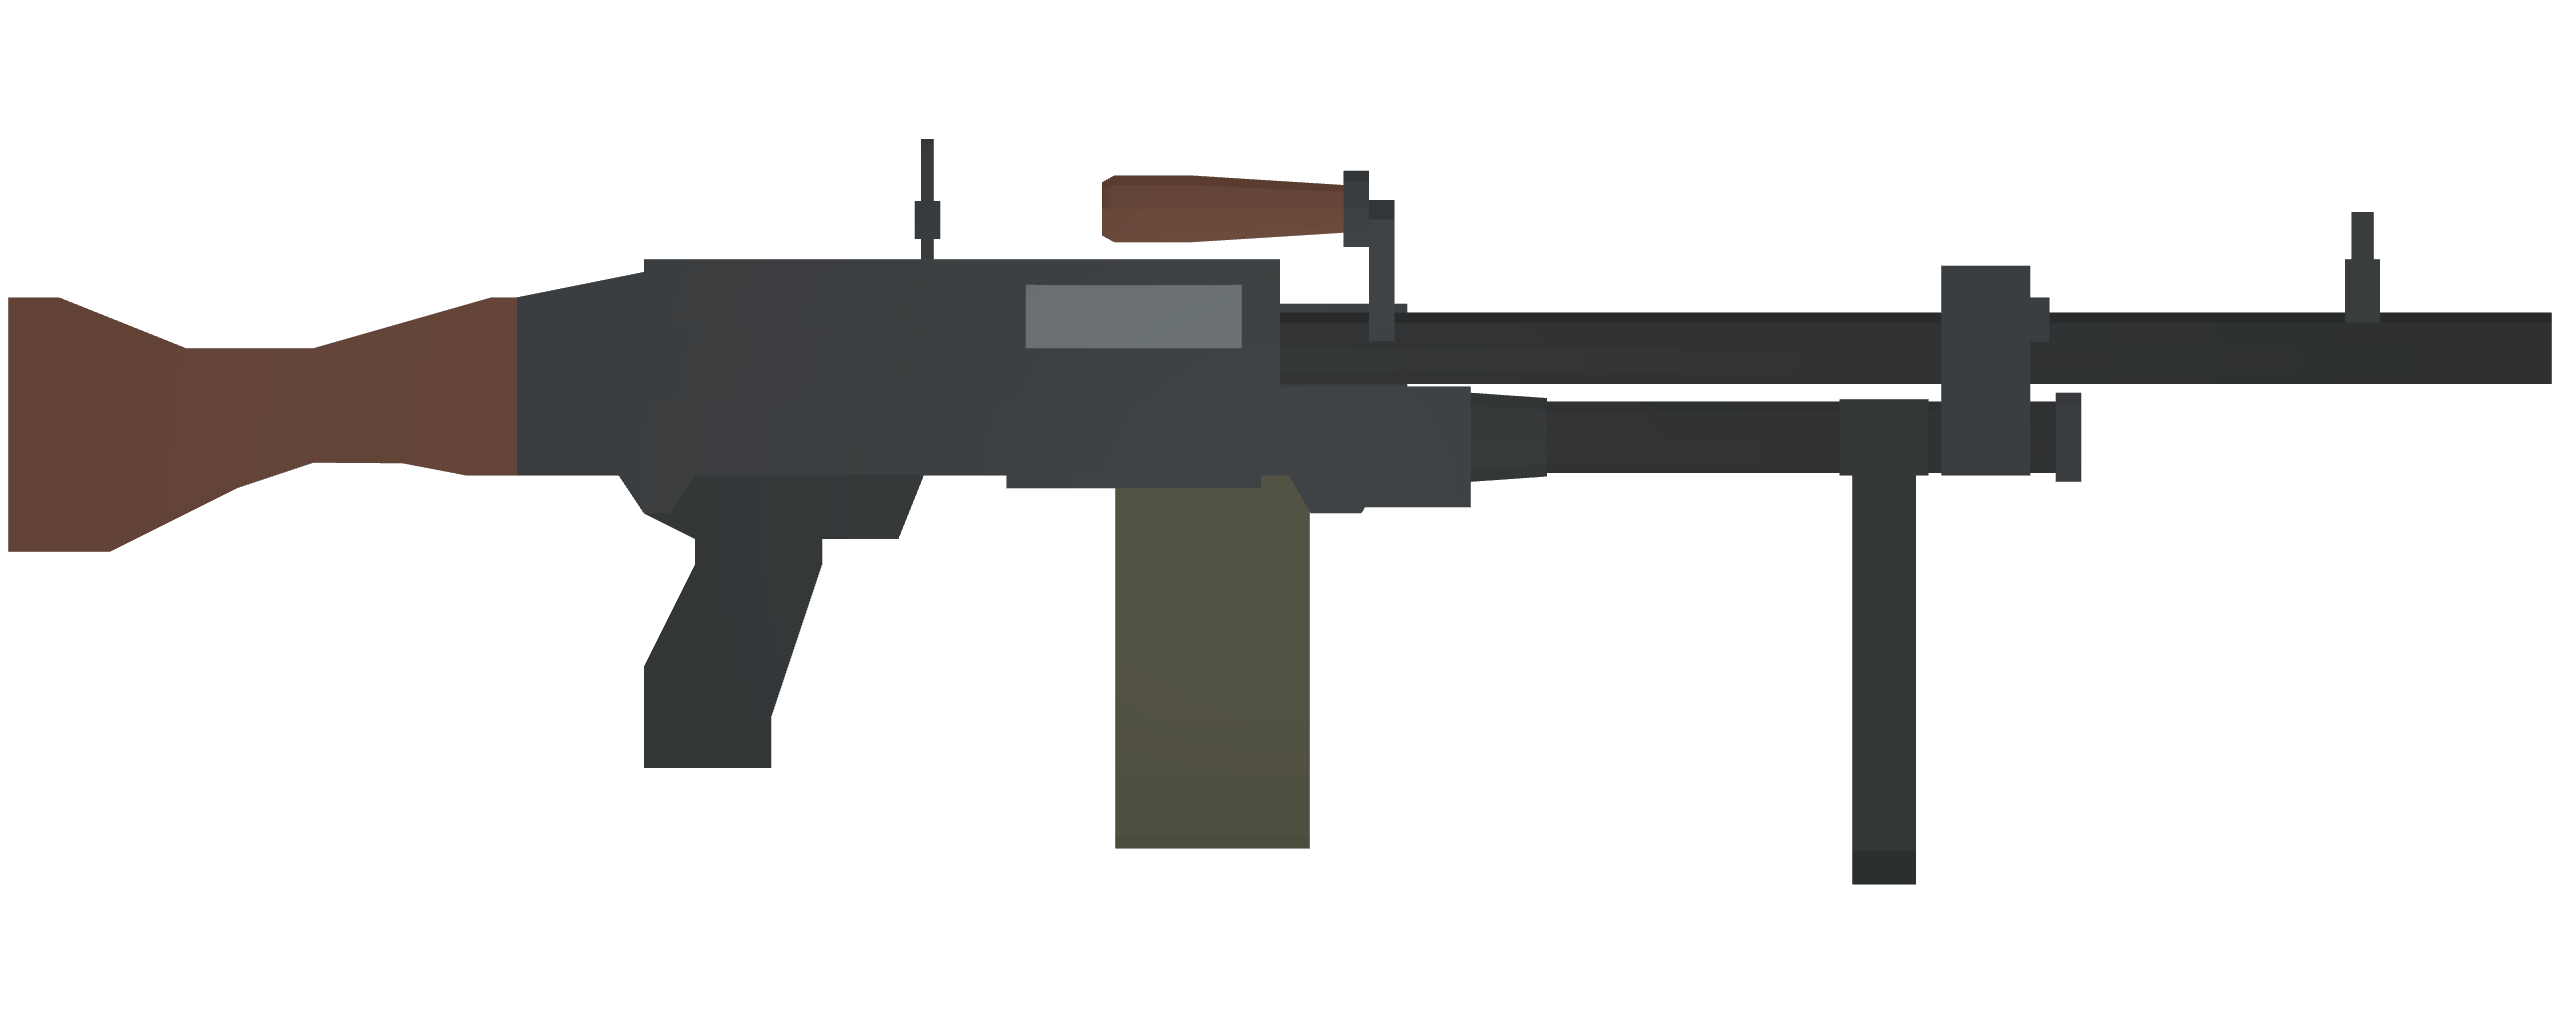 Unturned - All Weapons ID's for Uncreated Warfare Mods - Neutral Weapons - 3BE5D86